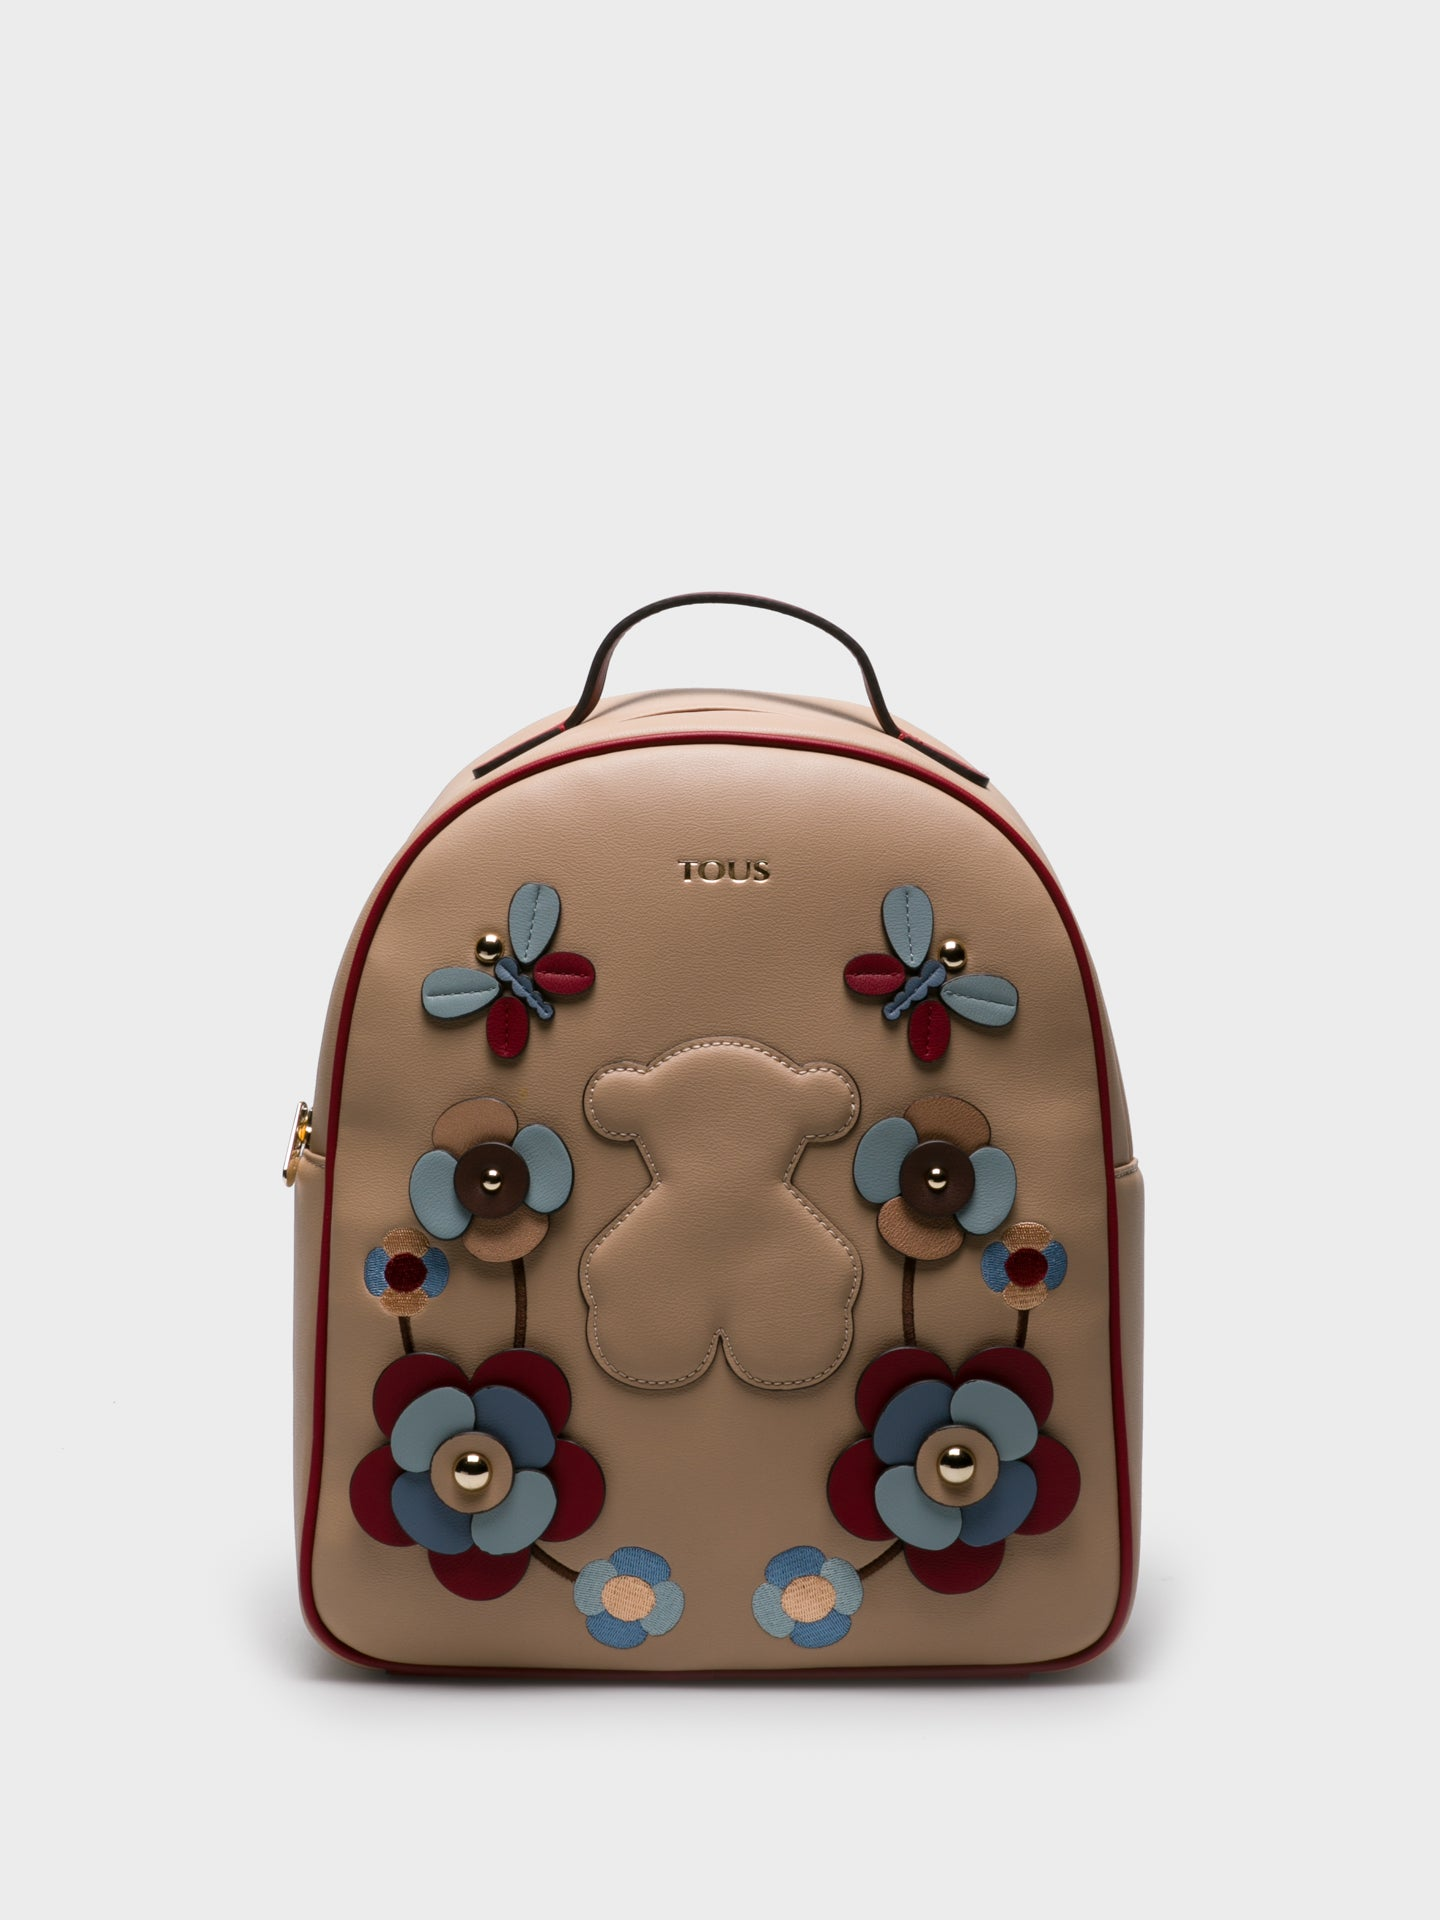 TOUS Tan Backpack